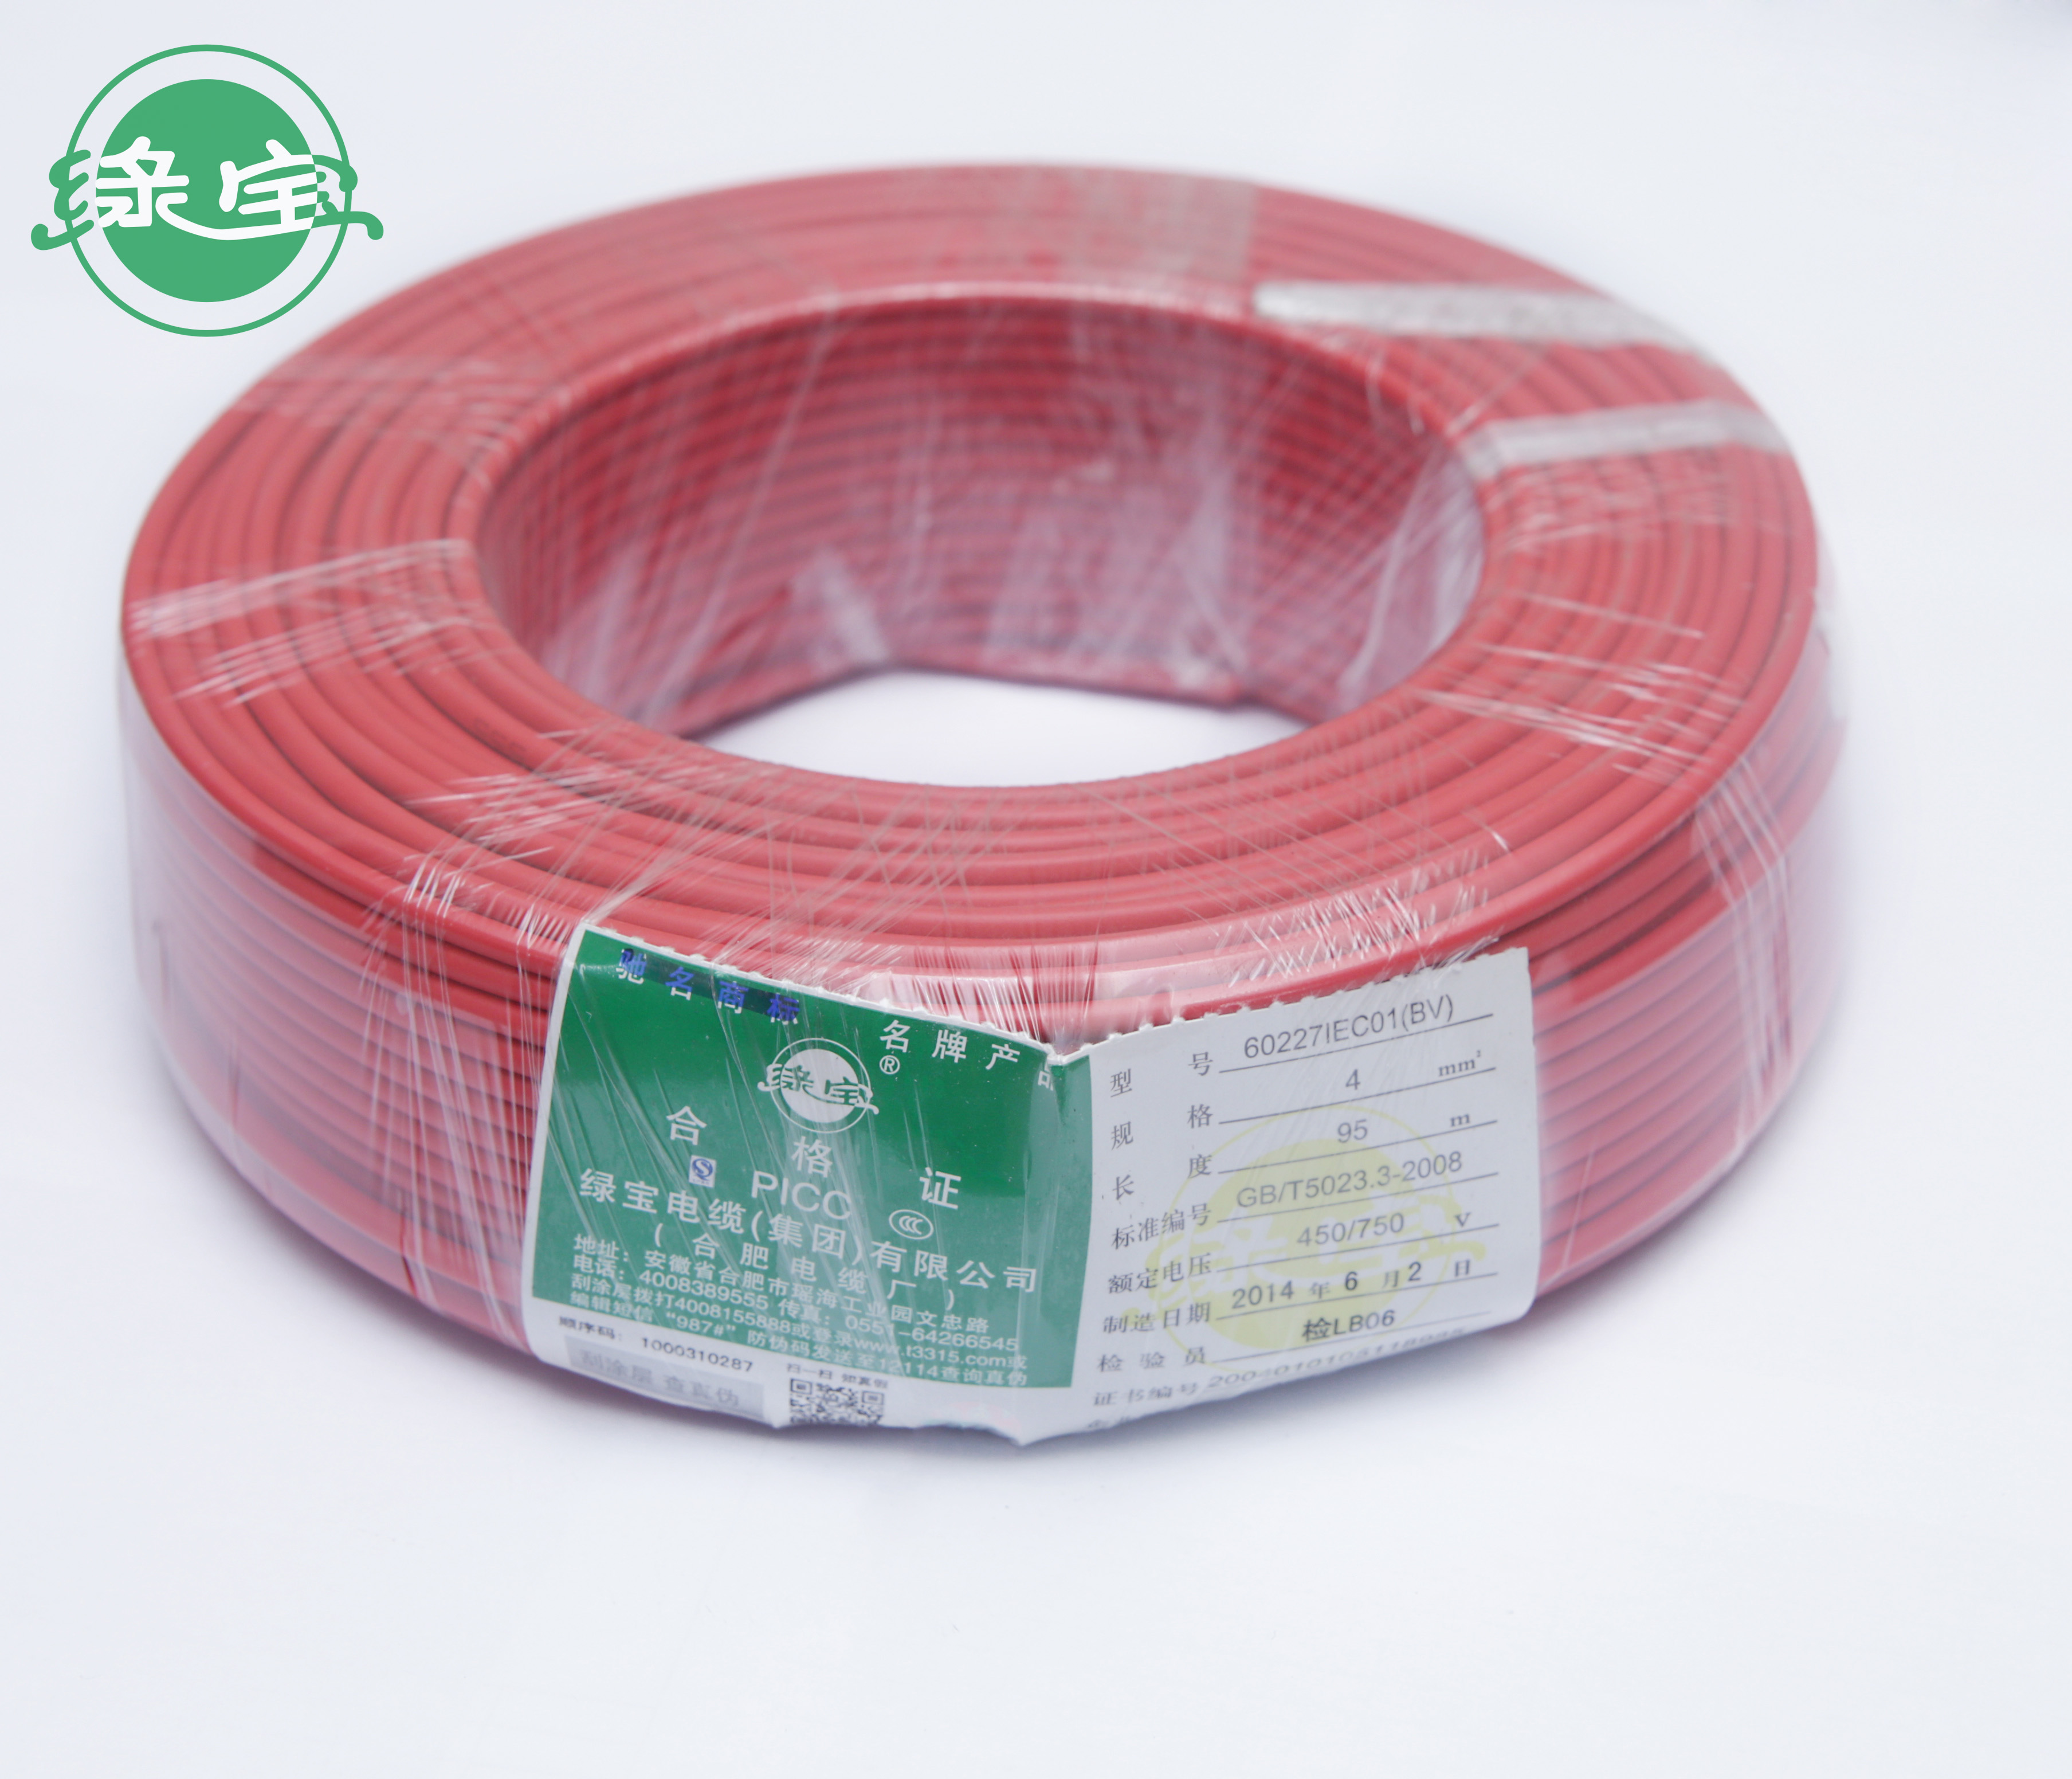 China Electrical Wire Types Shopping Wiring Get Quotations And Cable Bv4 Square Copper Gb Home Improvement Household Continusly Insulated